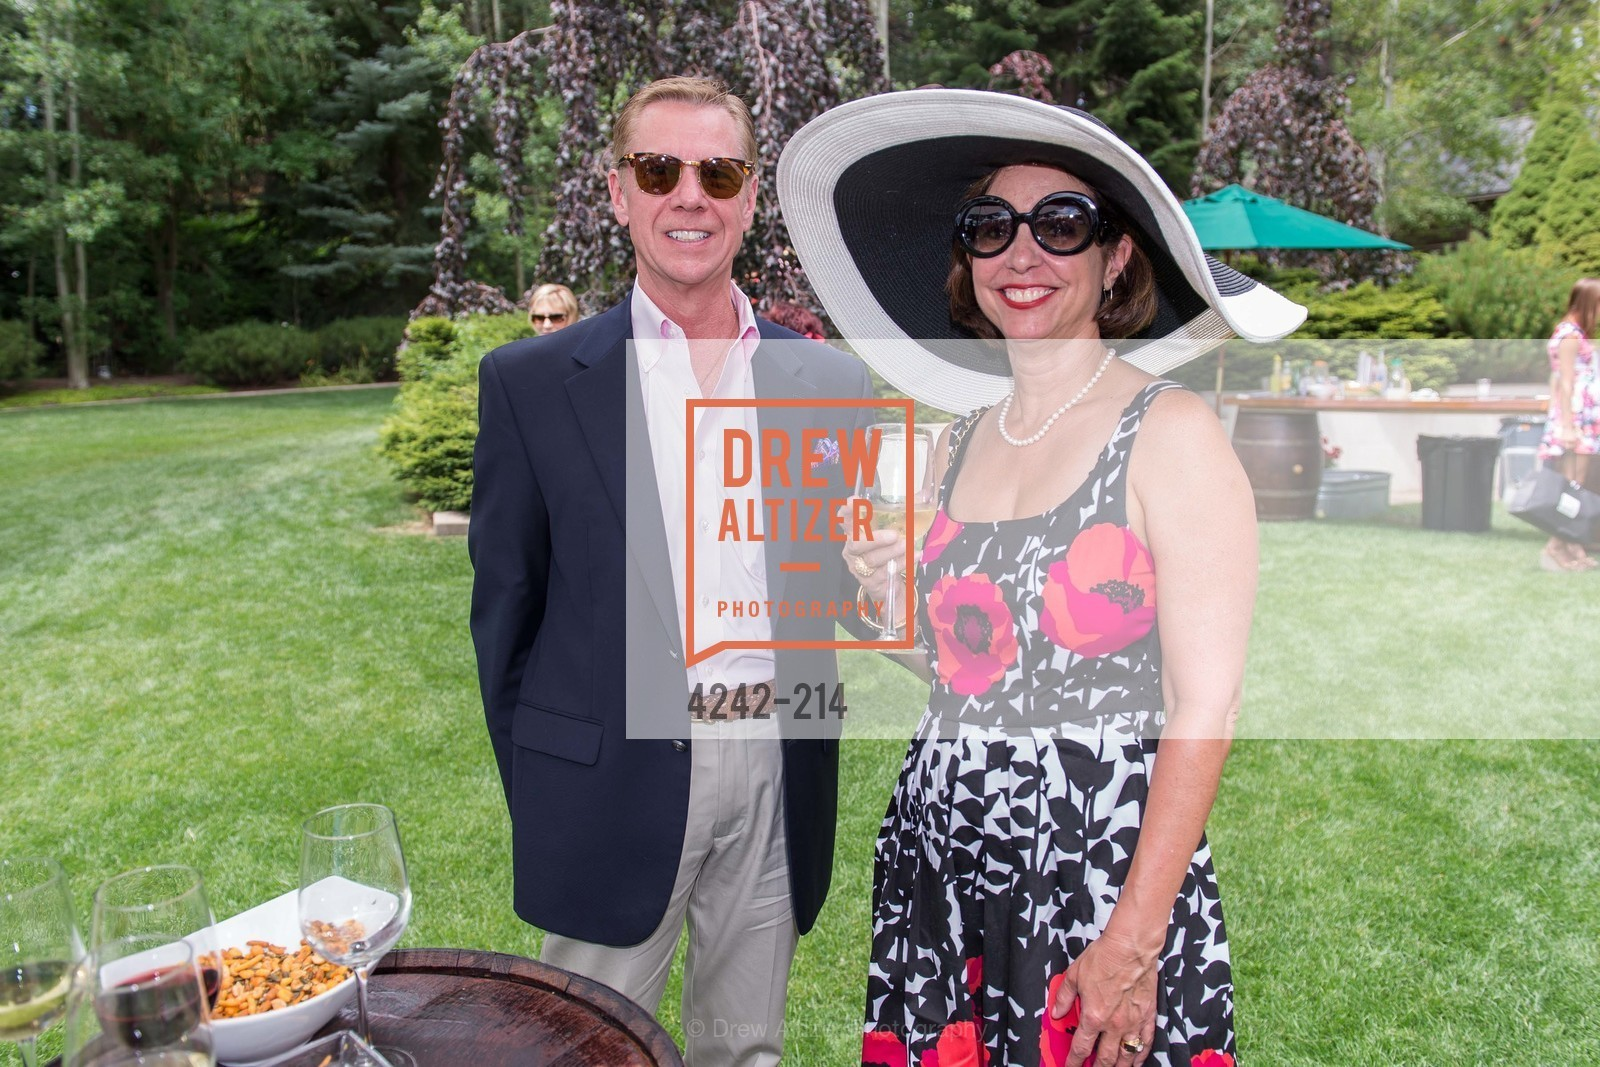 Jerry Landers, Cathy Landers, Saks Fifth Avenue and The League to Save Lake Tahoe Present Fashion on the Lake, Private Residence, August 1st, 2015,Drew Altizer, Drew Altizer Photography, full-service agency, private events, San Francisco photographer, photographer california